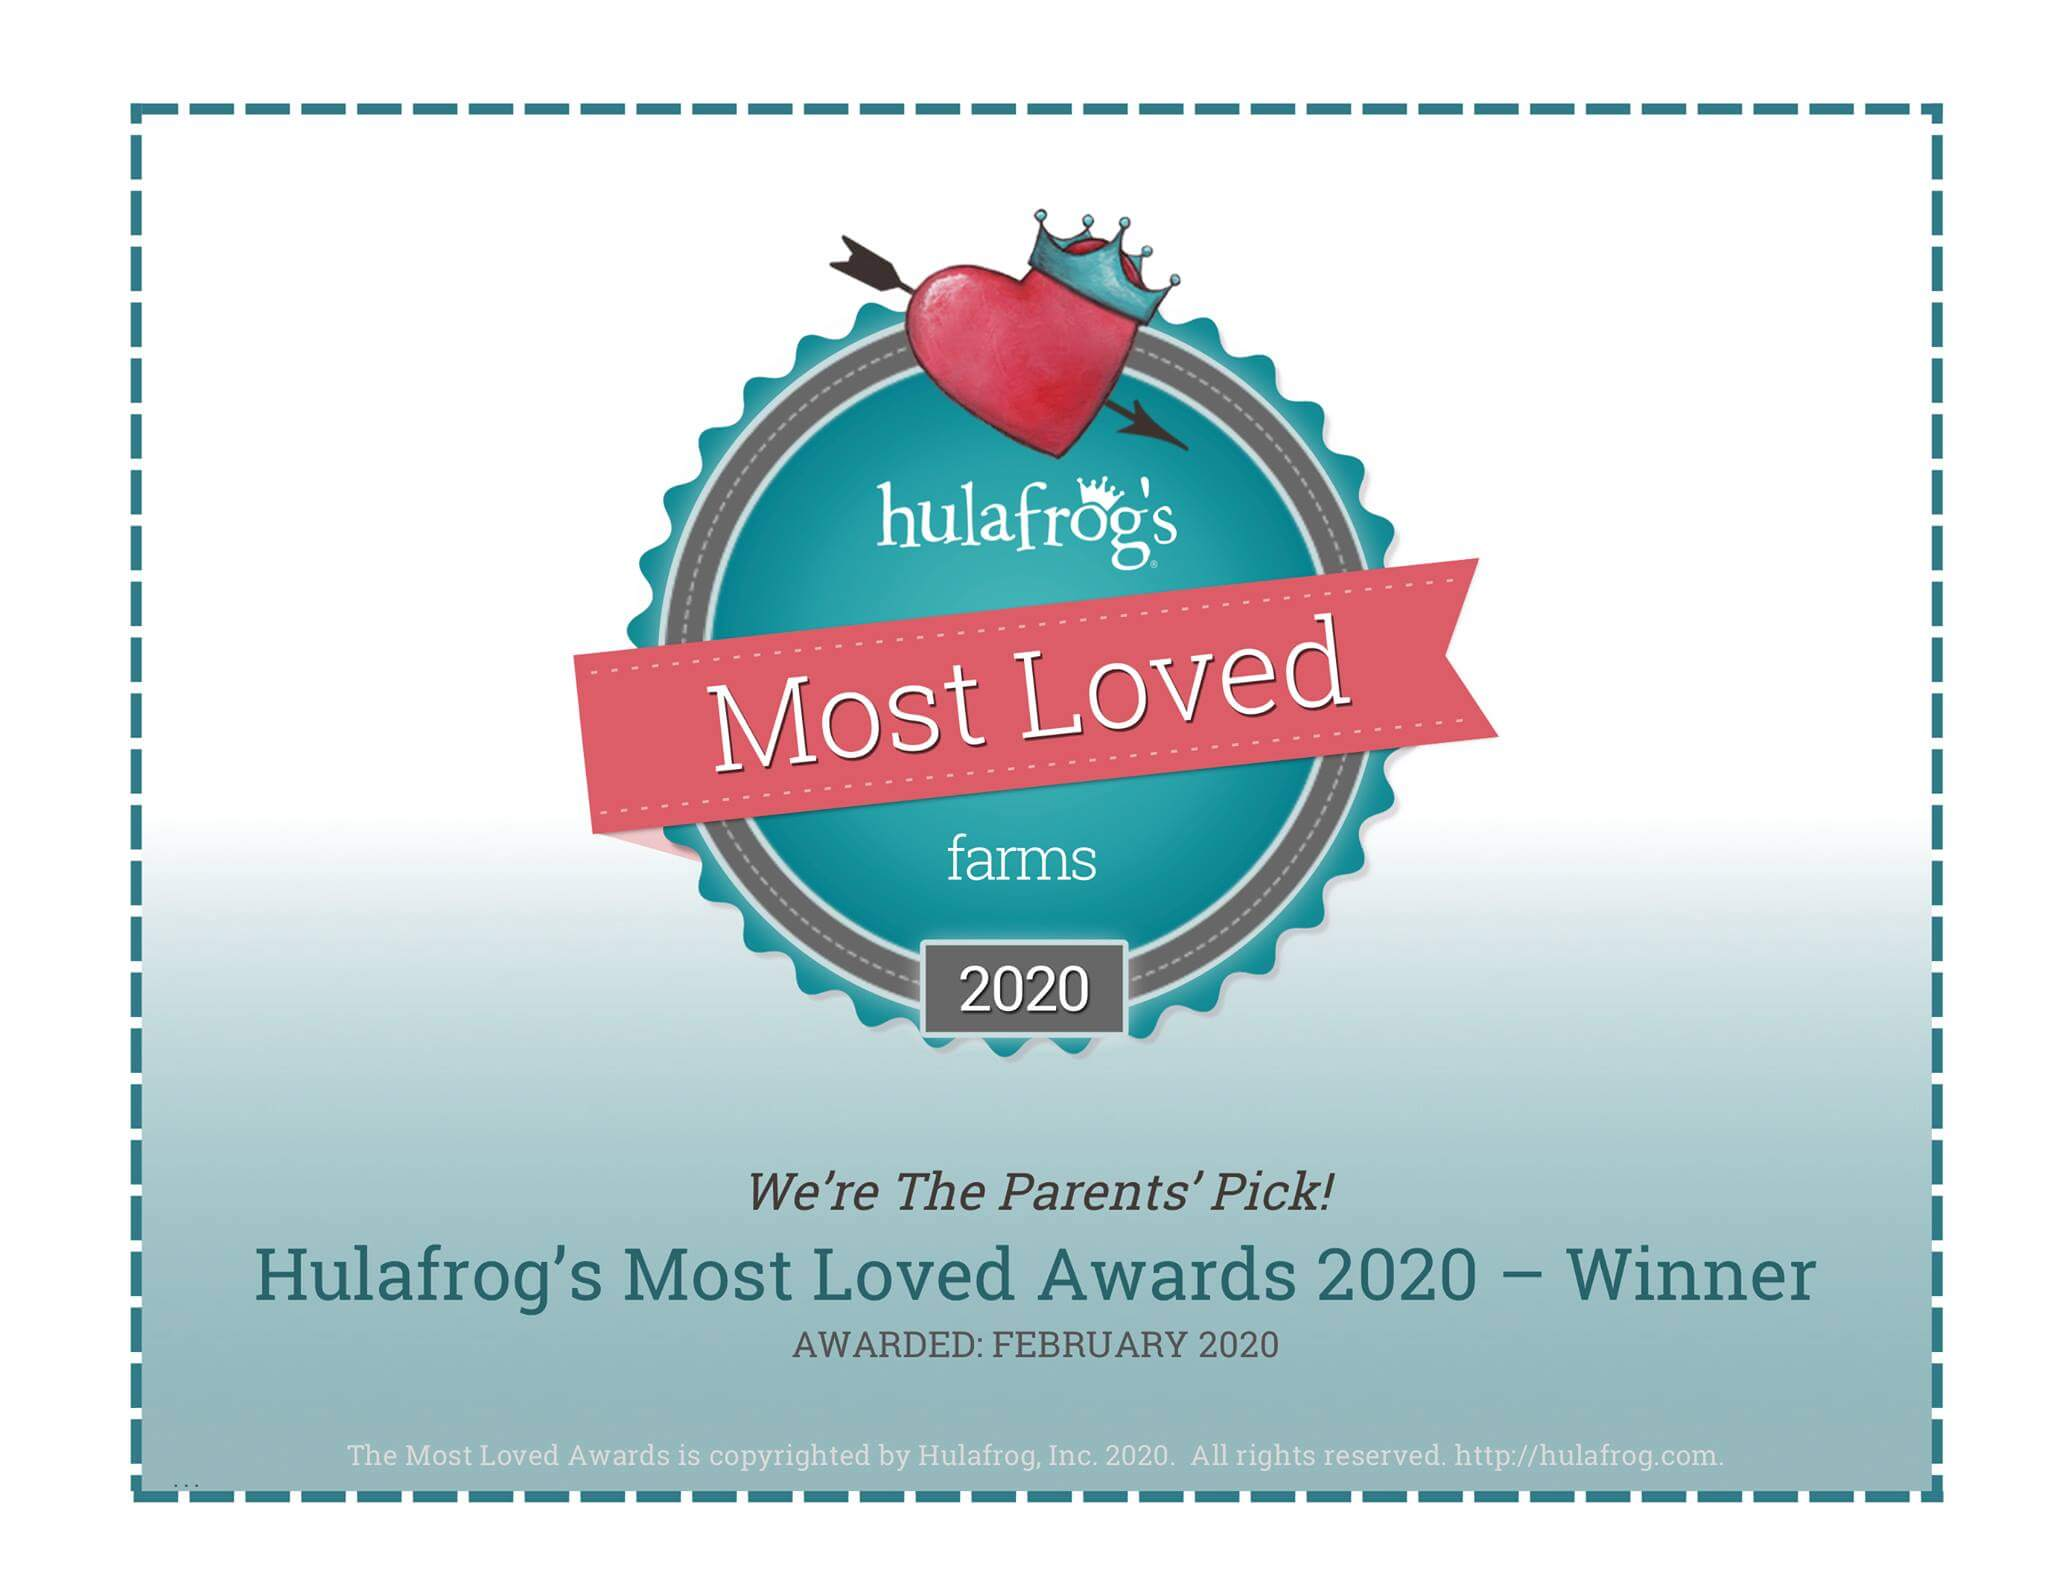 Hulafrog Most Loved 2020